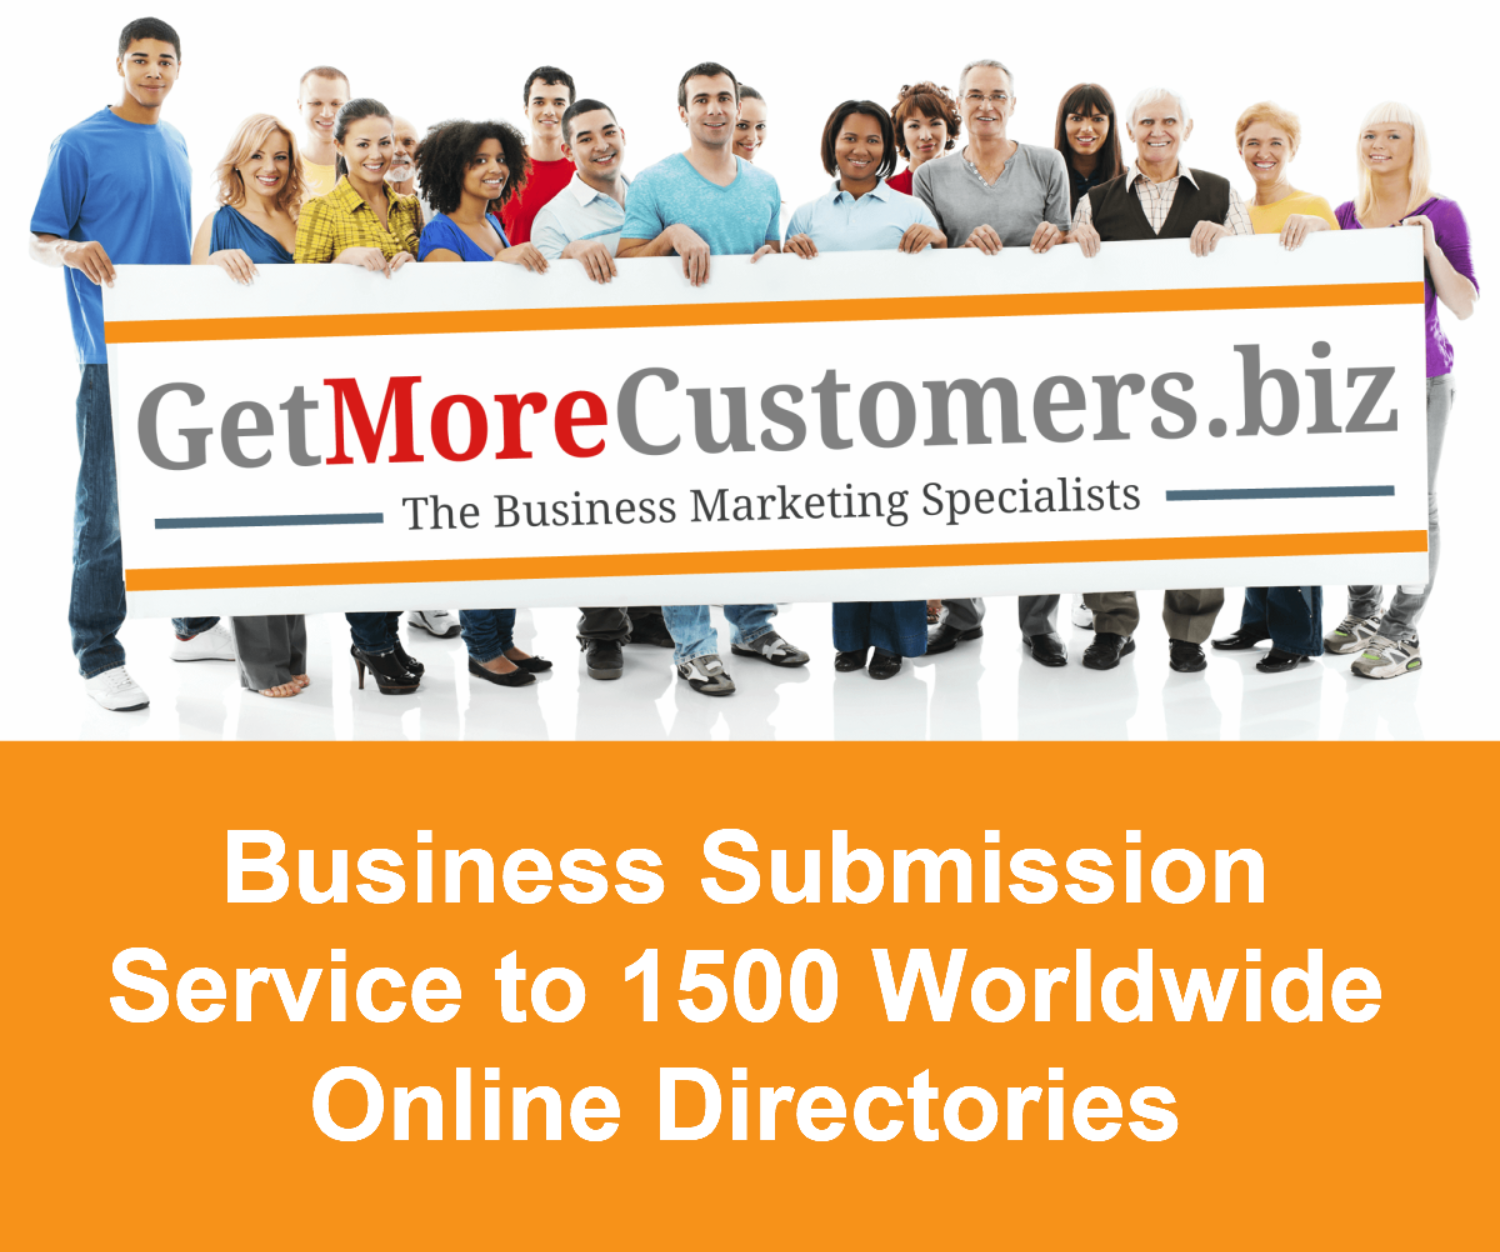 Submission to 1,500 Worldwide Directories $199.00